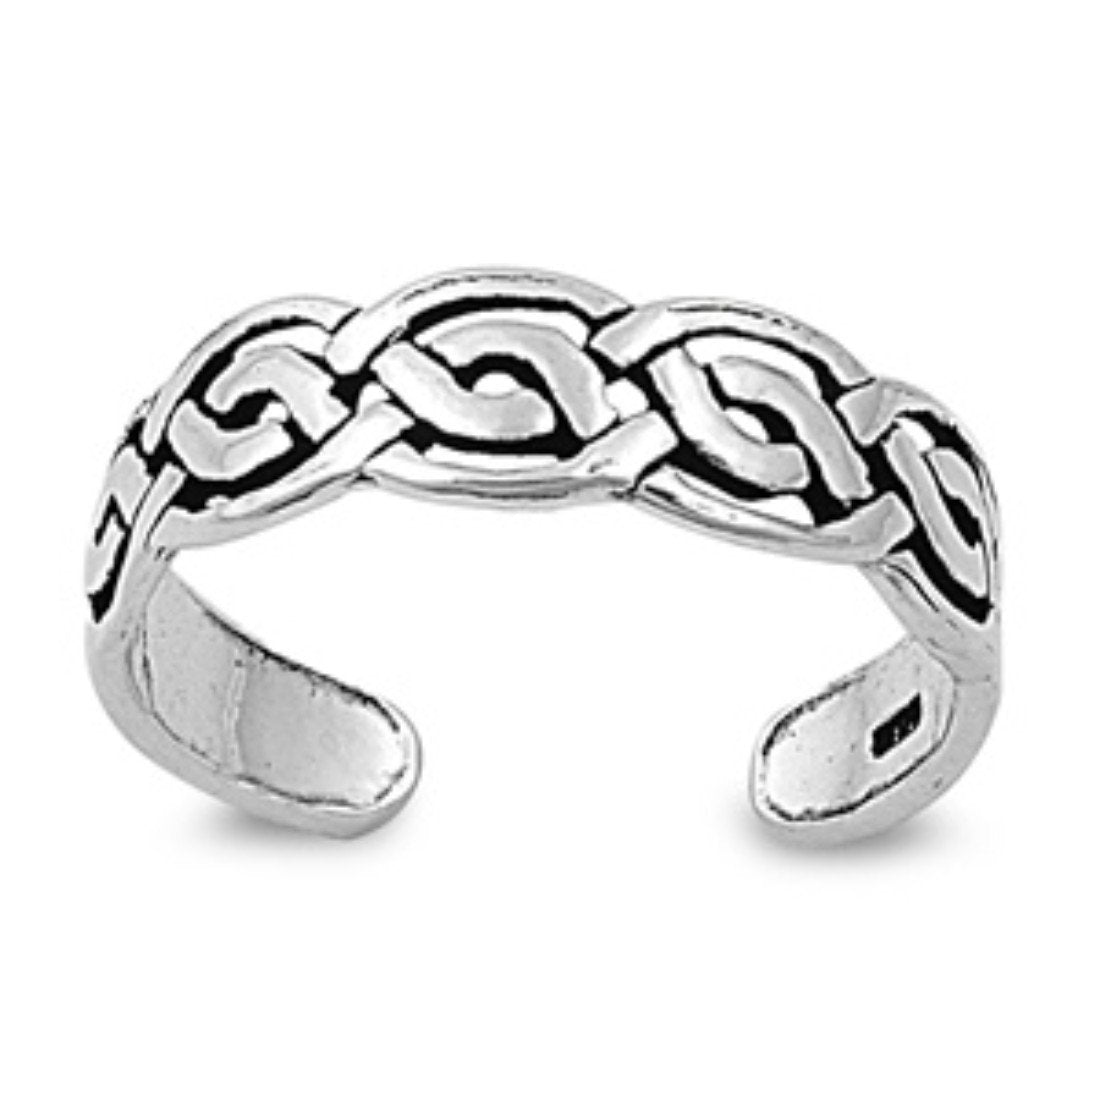 Celtic Toe Ring Adjustable Band Fashion Jewelry 925 Sterling Silver (5mm)